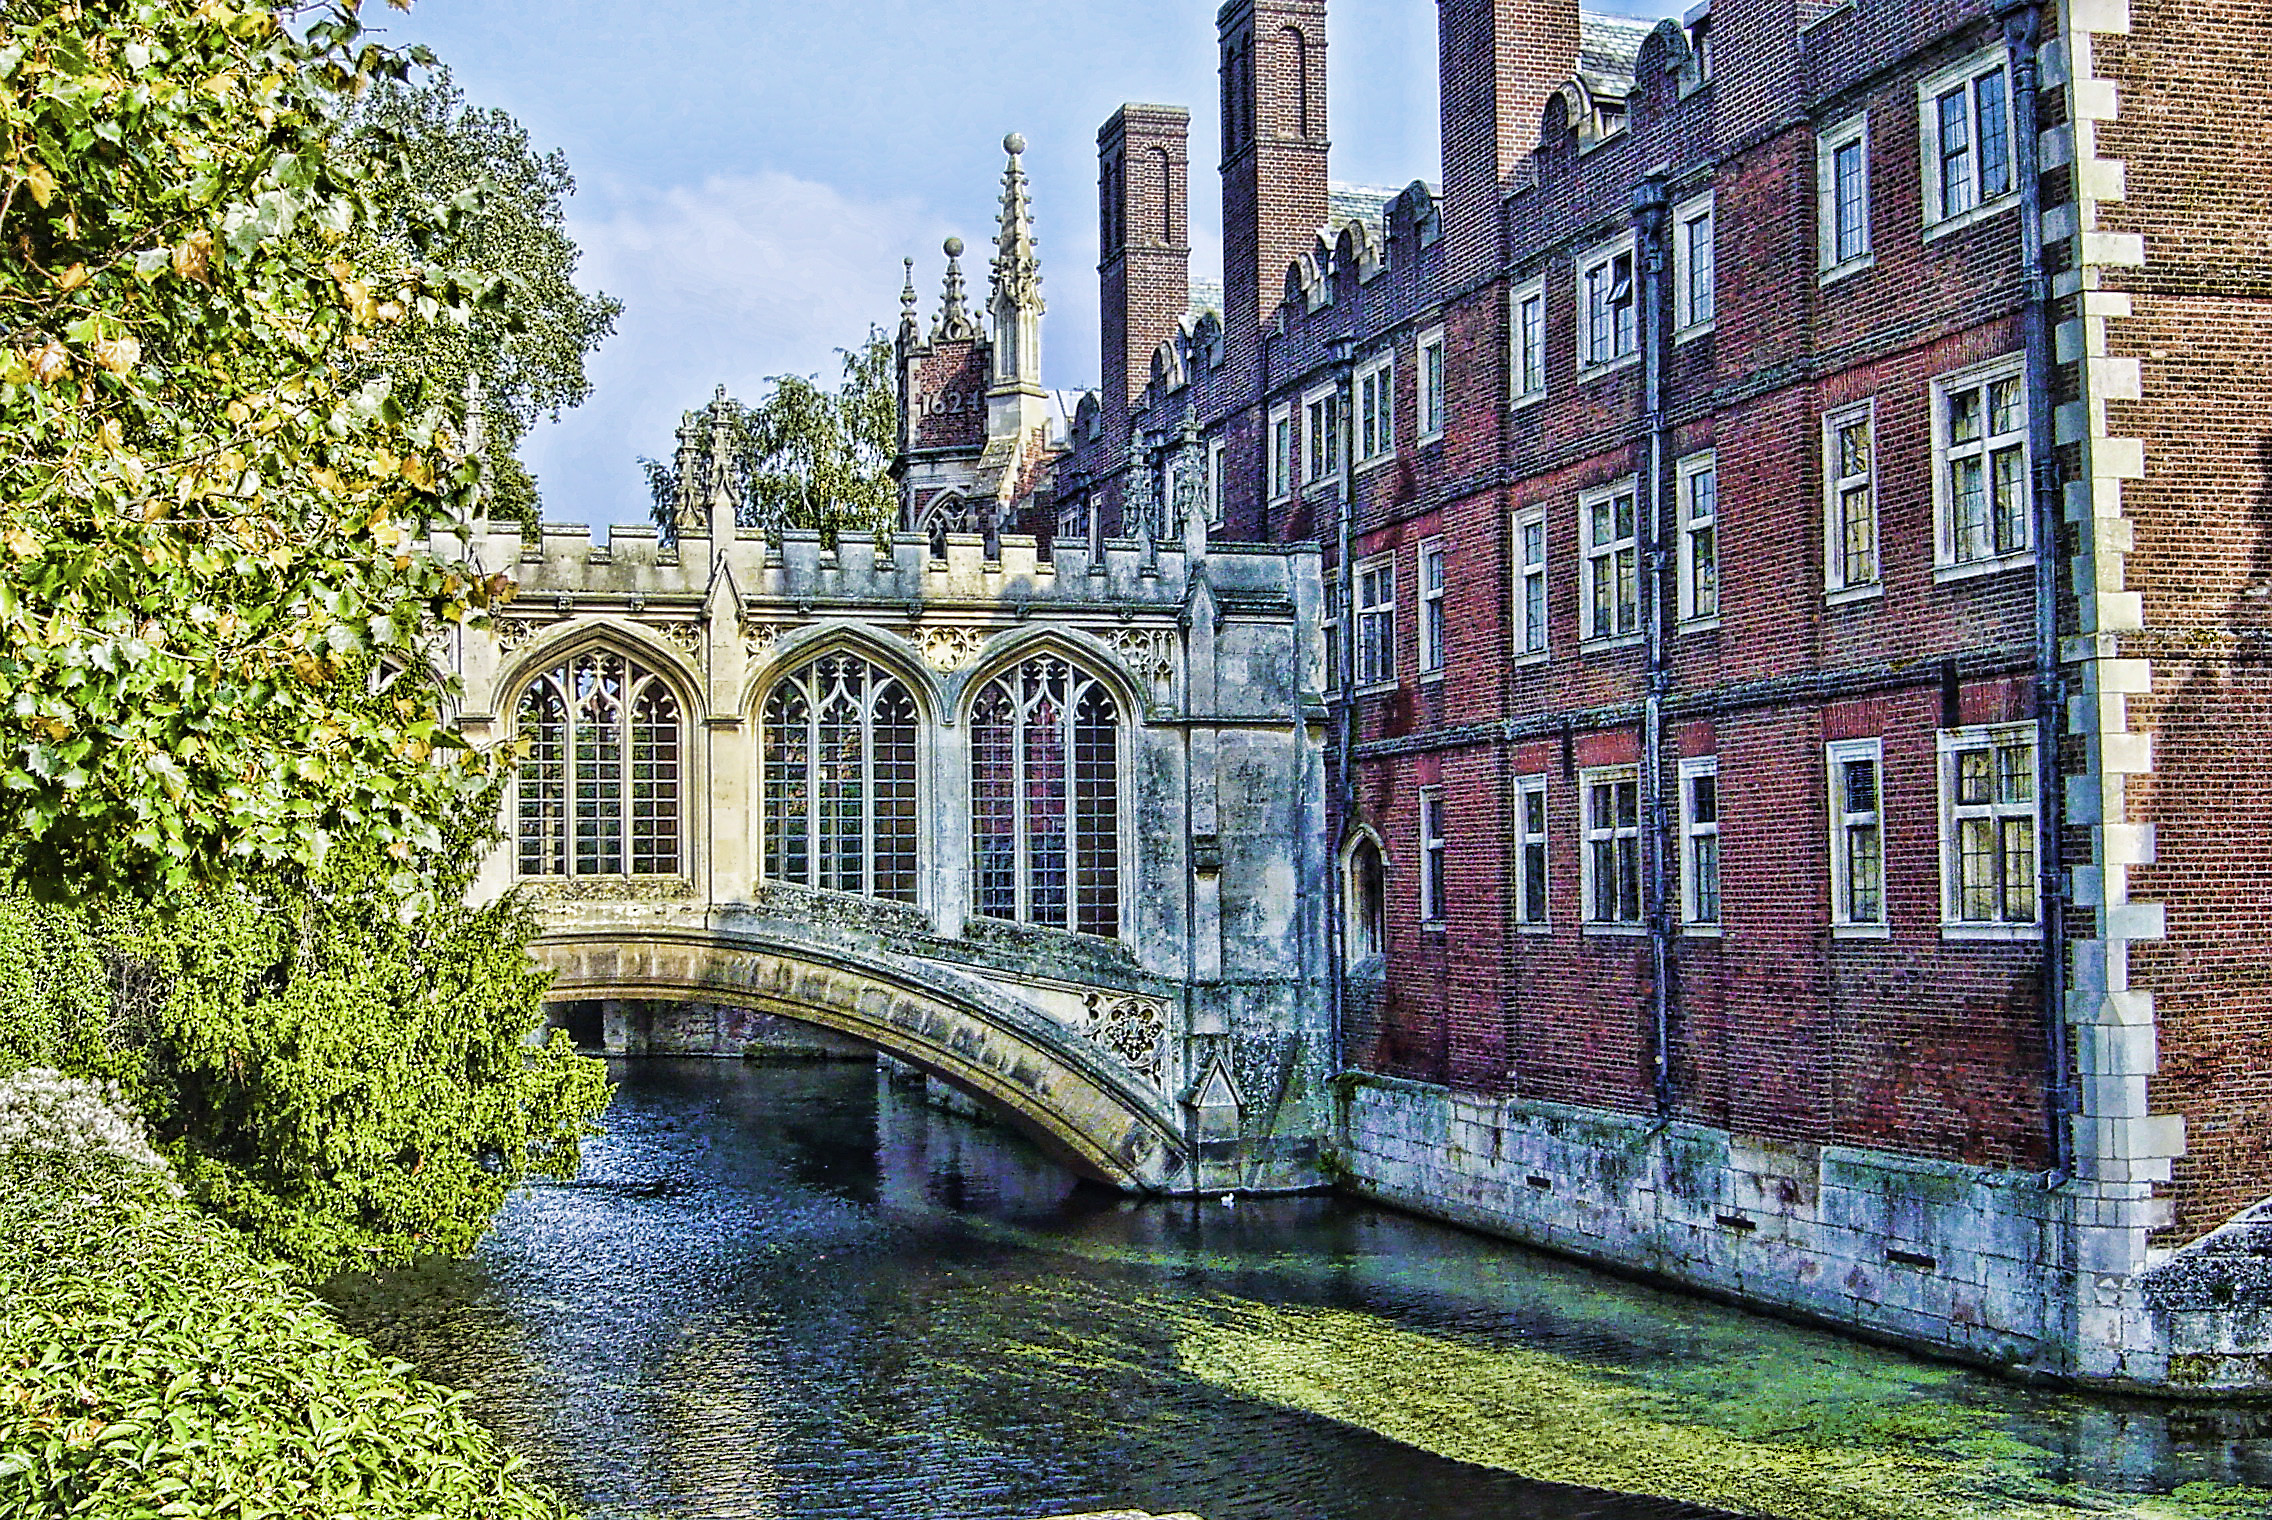 file bridge of sighs cambridge 16 october wikimedia commons. Black Bedroom Furniture Sets. Home Design Ideas